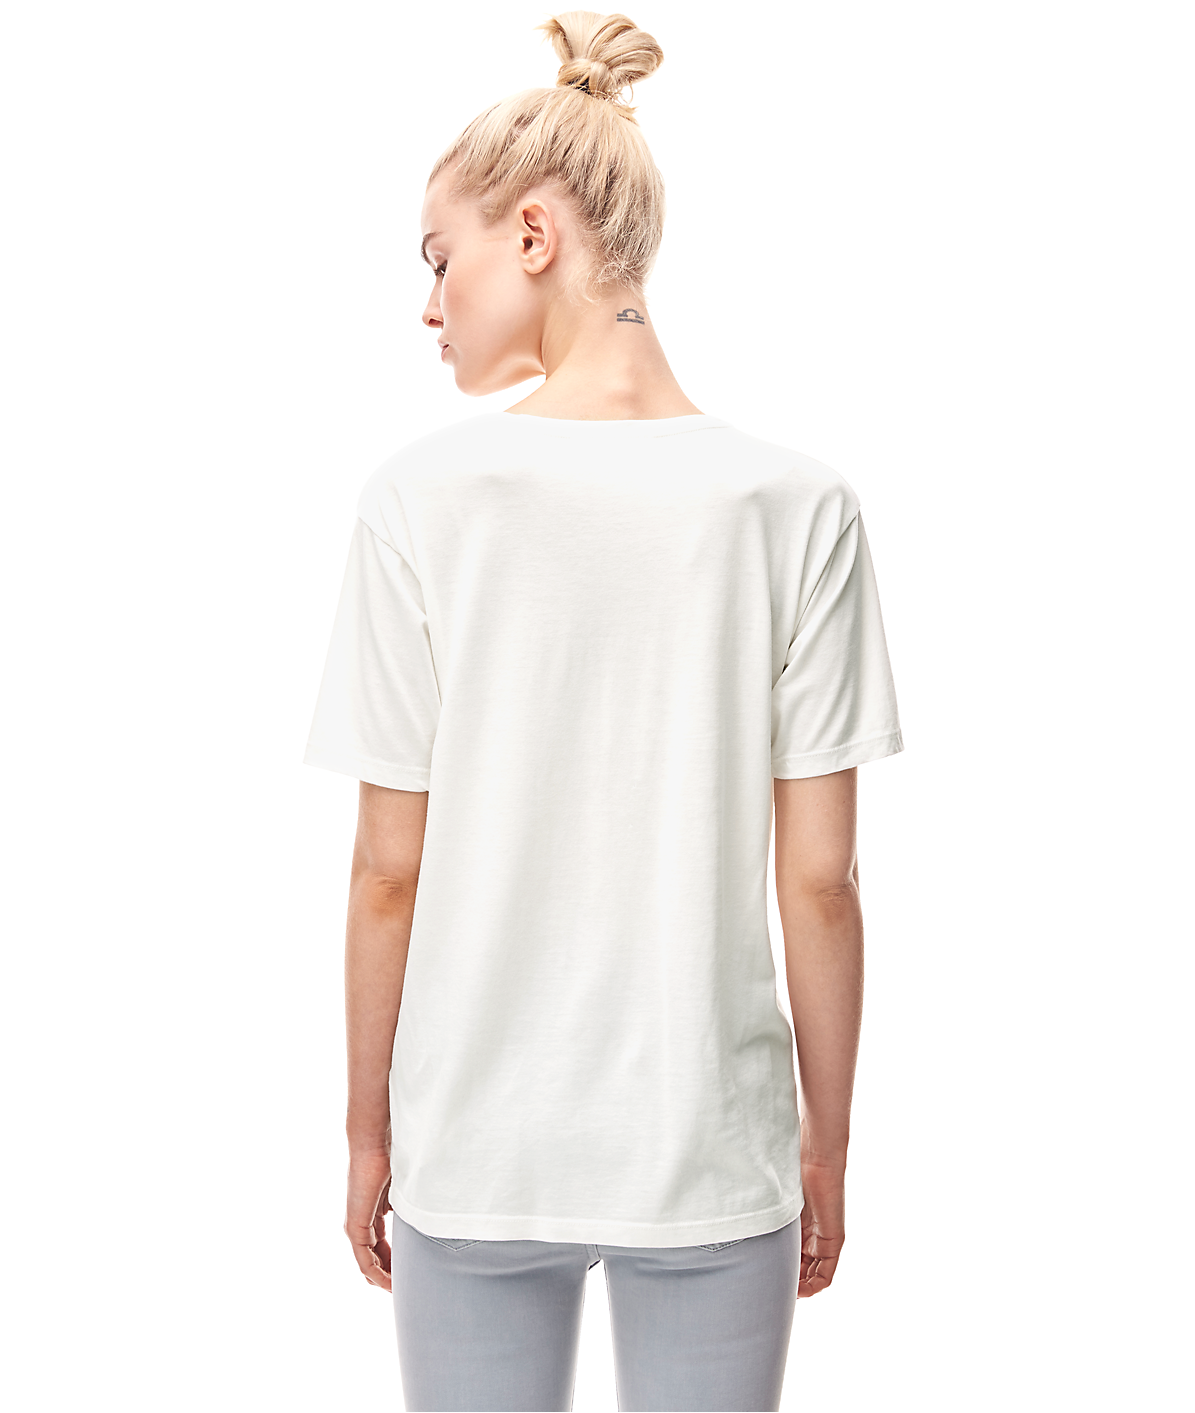 T-shirt H1161201 from liebeskind